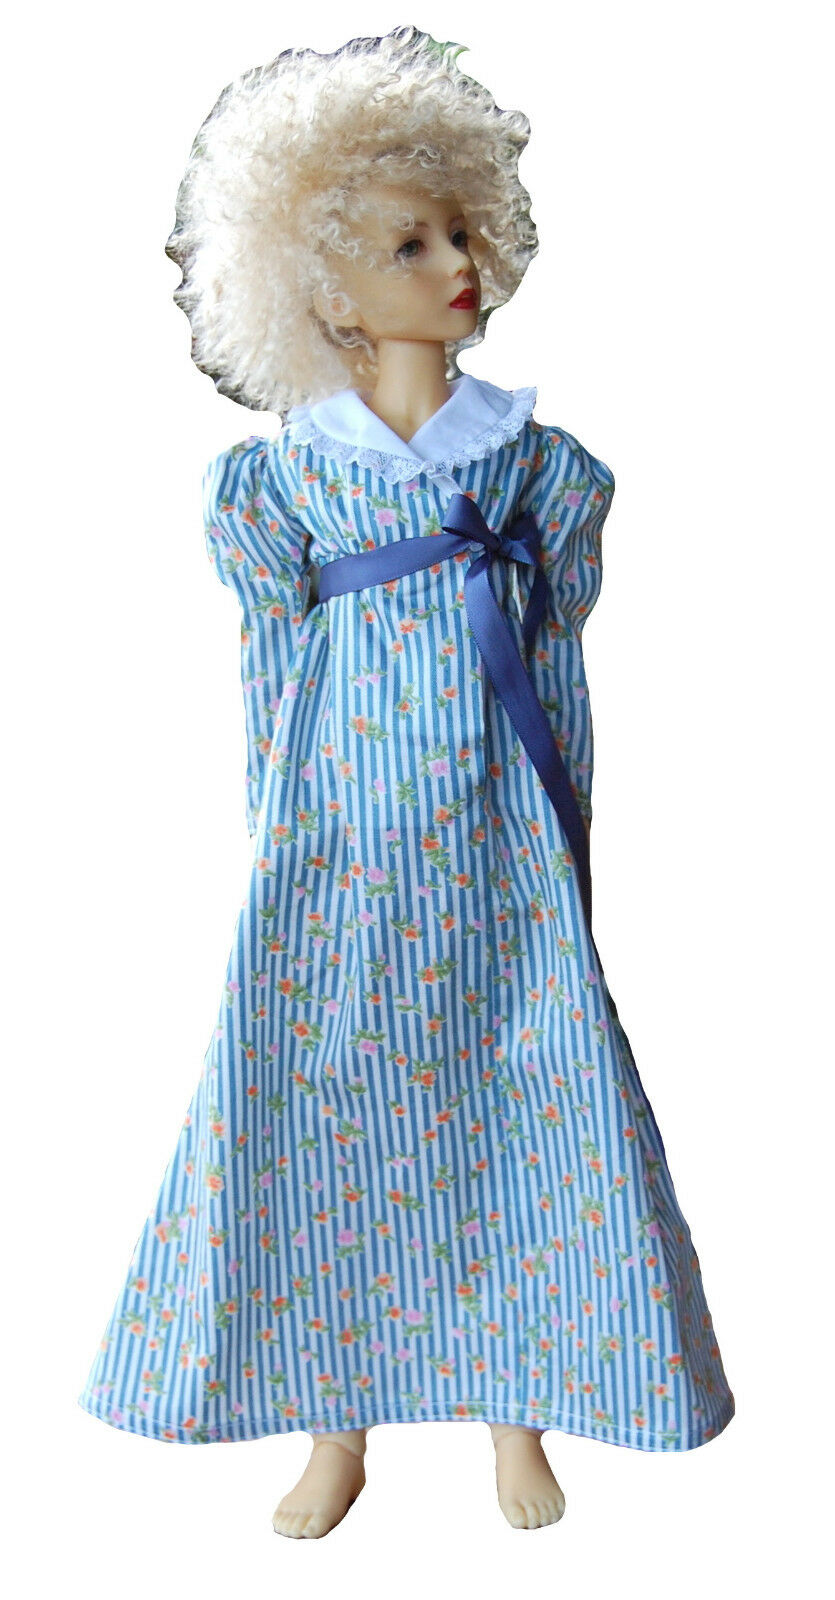 Boneka historic dress dress dress for 43cm   17   BJD MSD dolls d8c4b1